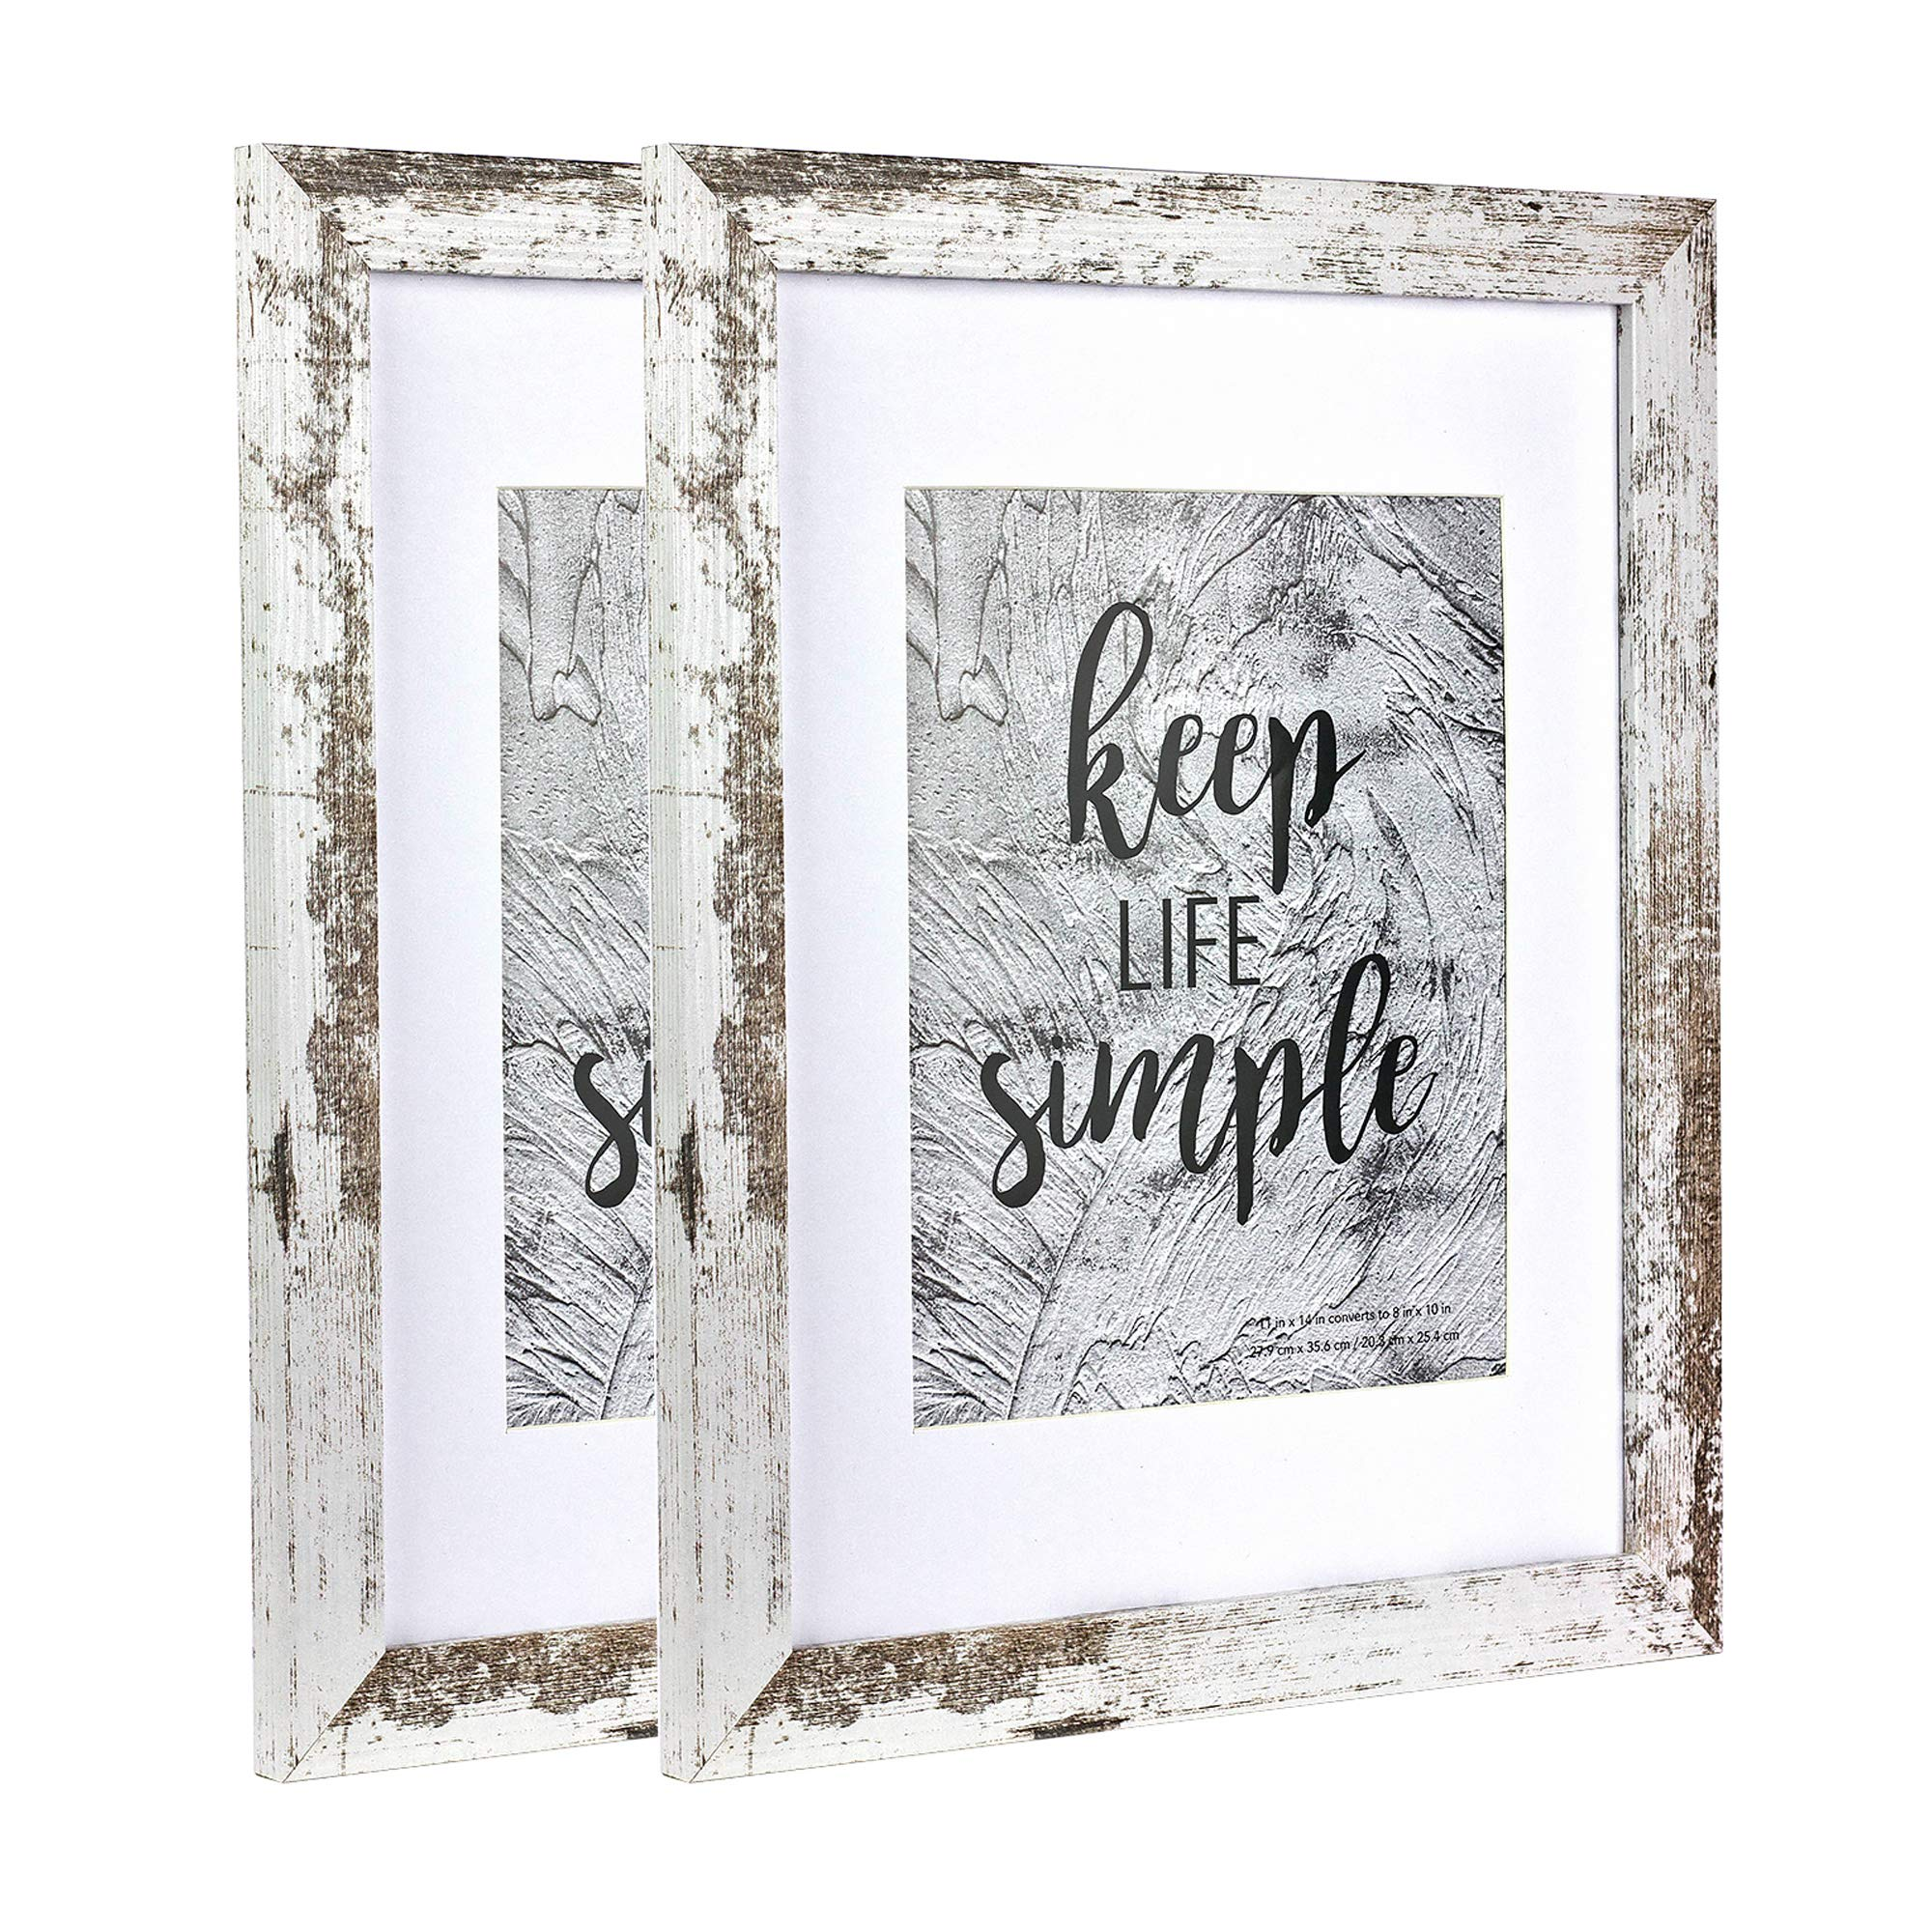 Home&Me 11x14 Picture Frame Rotten White 2 Pack - Made to Display Pictures 8x10 with Mat or 11x14 Without Mat - Wide Molding - Wall Mounting Material Included by Home&Me